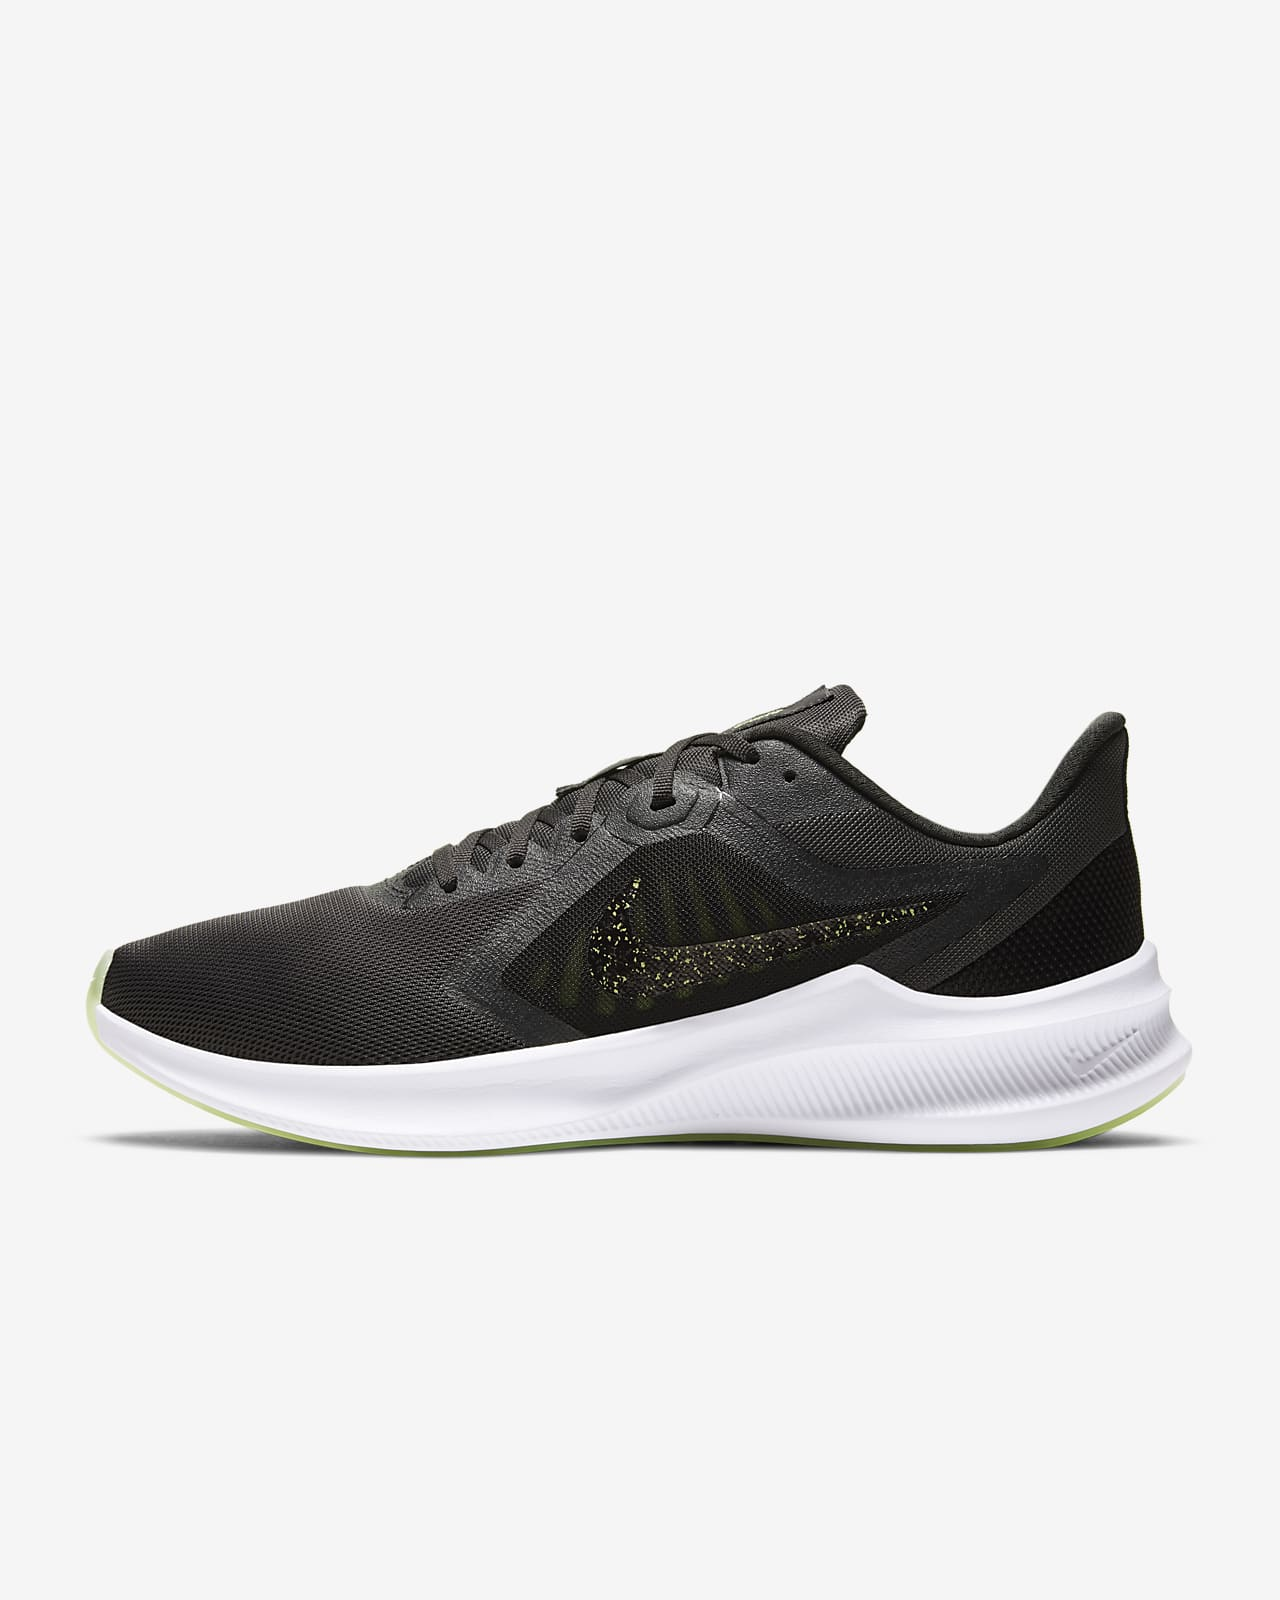 Nike Downshifter 10 Special Edition Men's Running Shoe